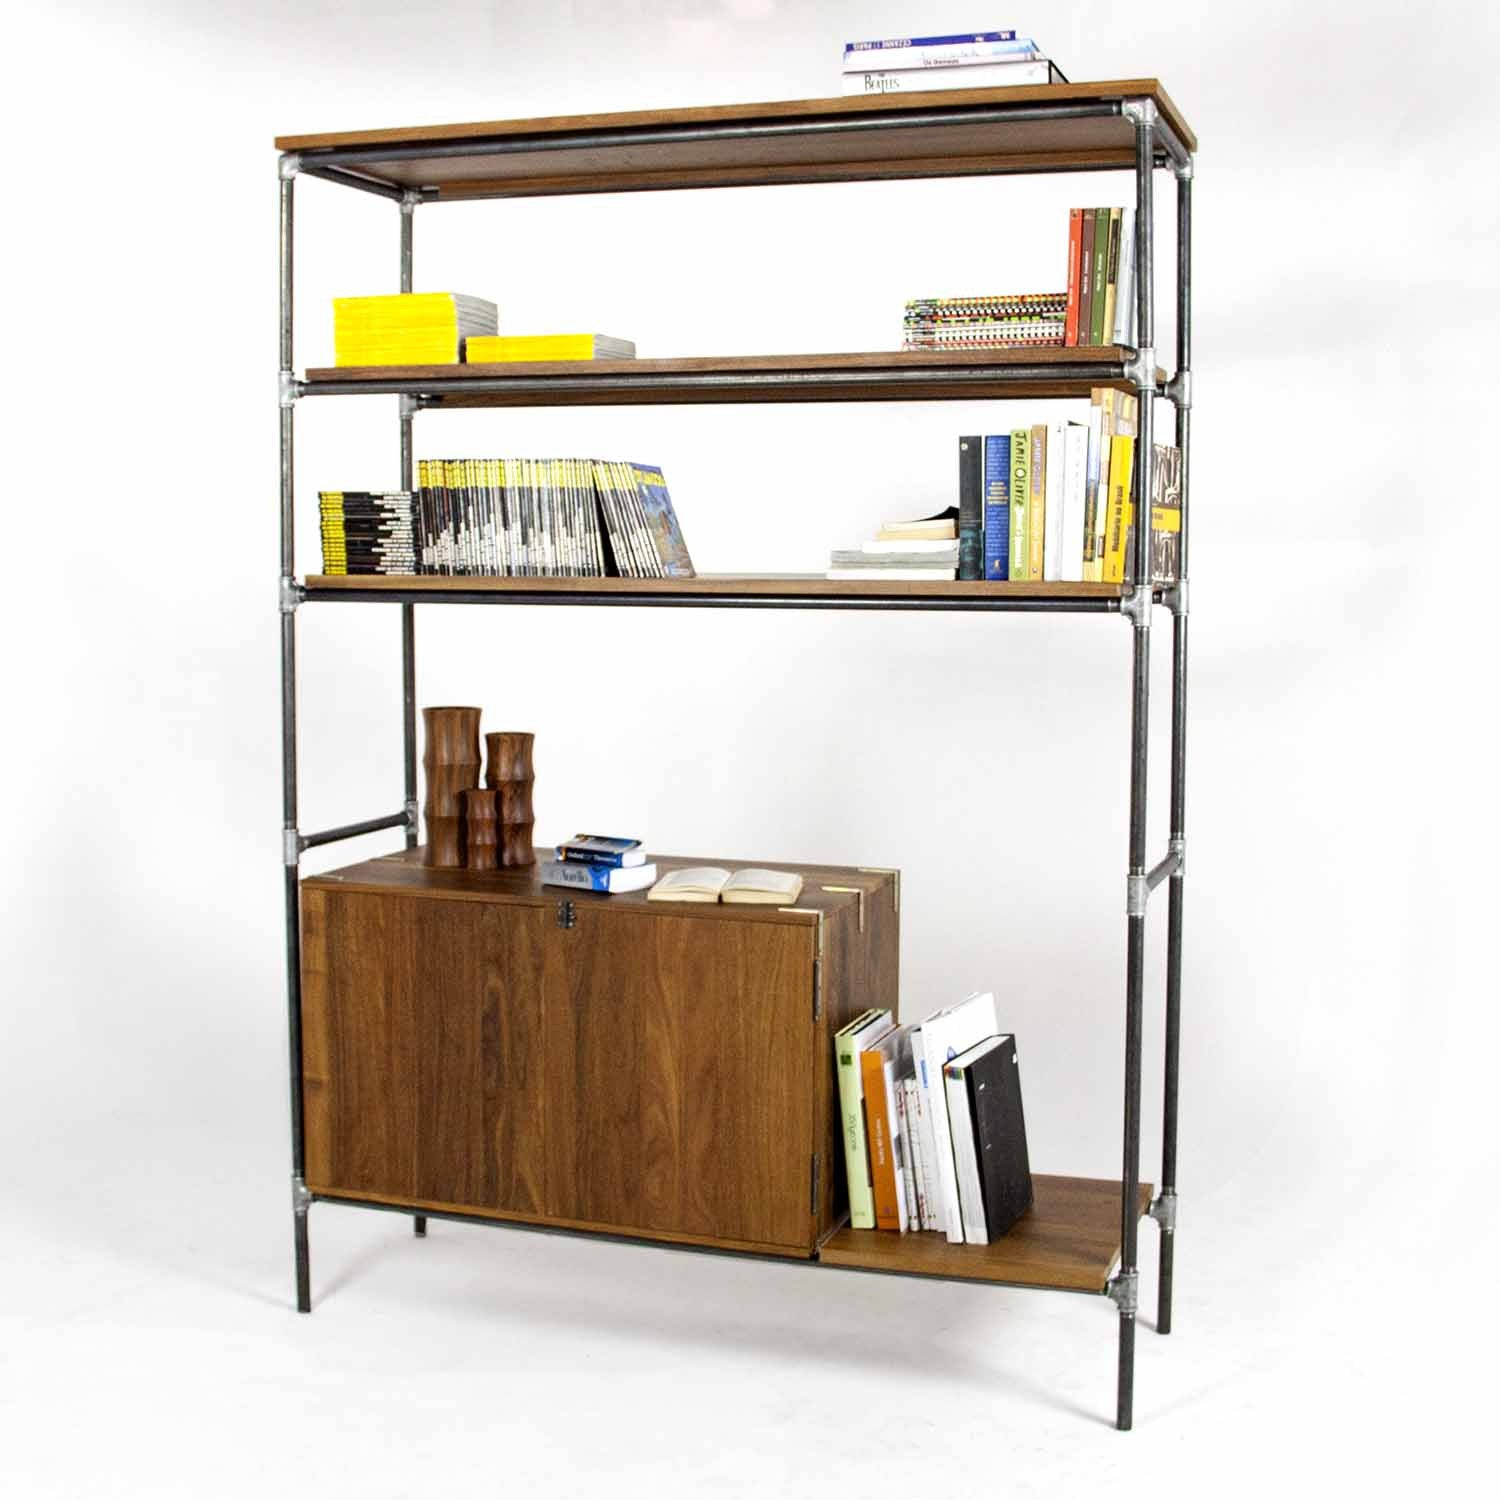 Estante Pipe Shelf Design Industrial Em Cano De A O E Madeira